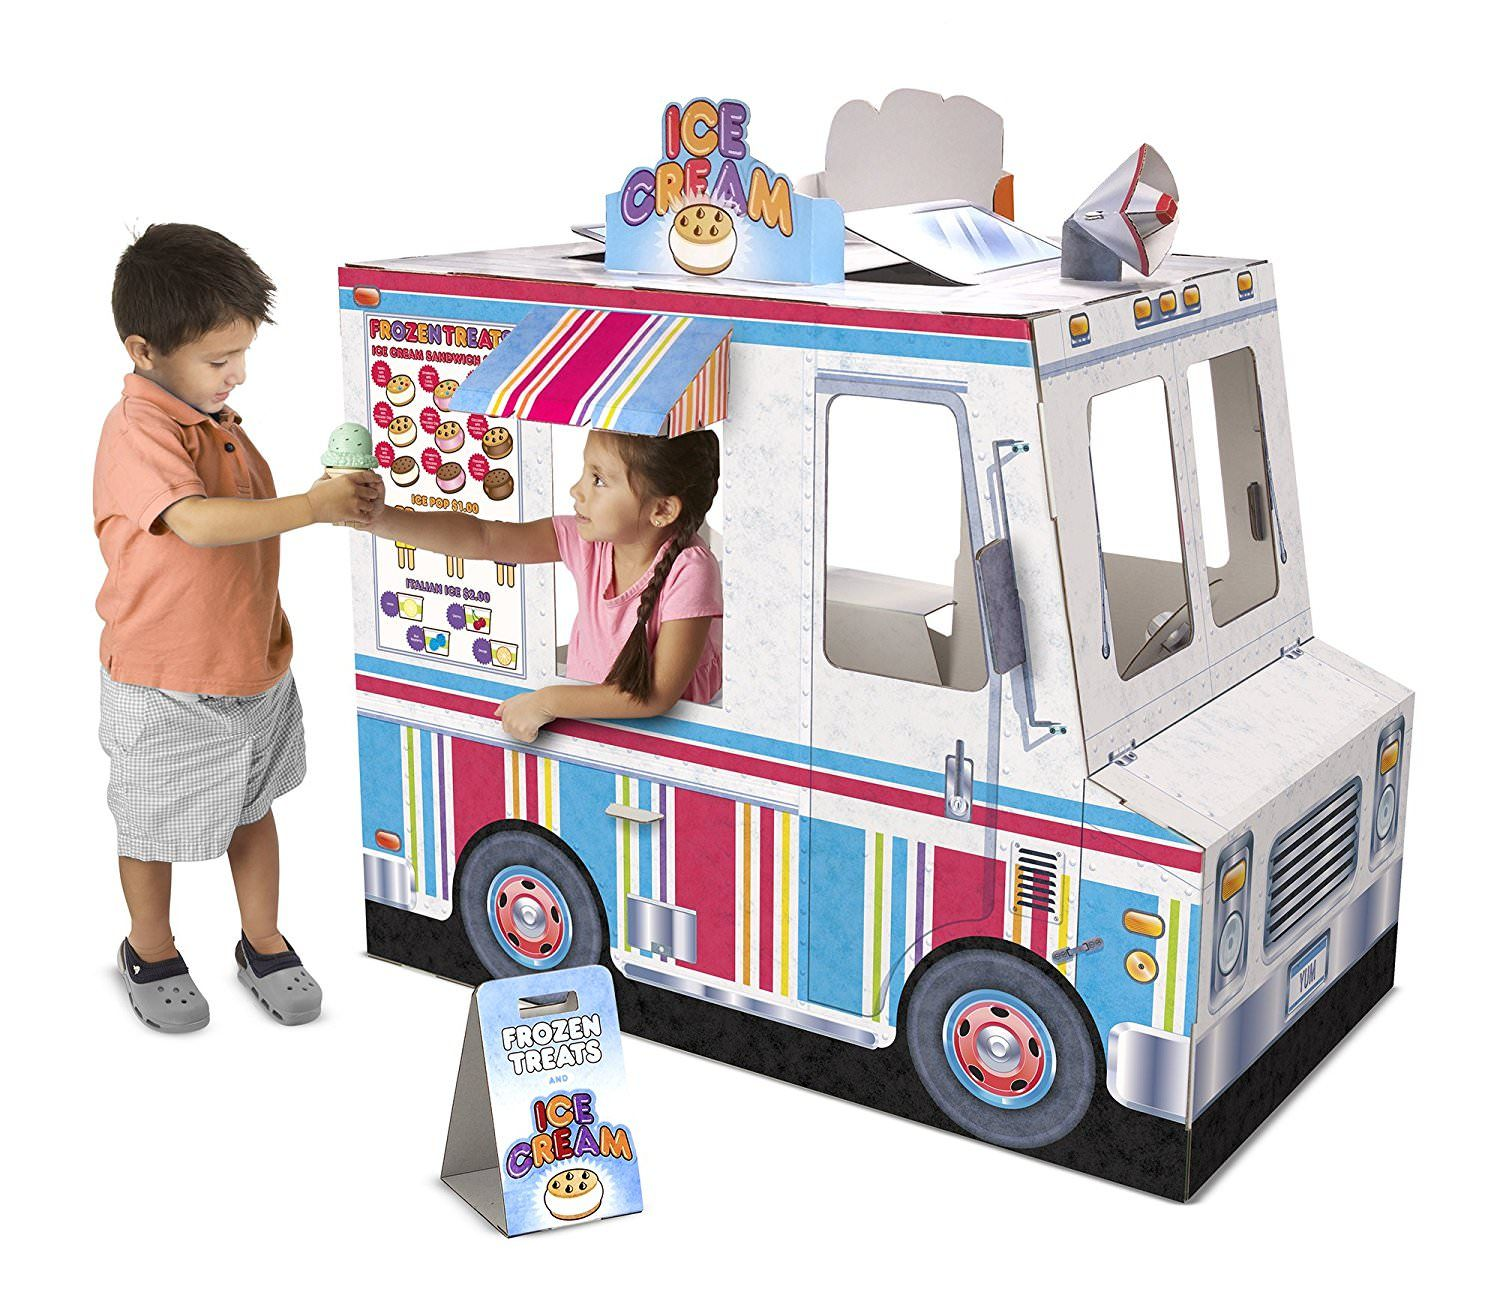 2020 Top Pretend Play Toys And Gifts Play Houses Indoor Playhouse Ice Cream Truck